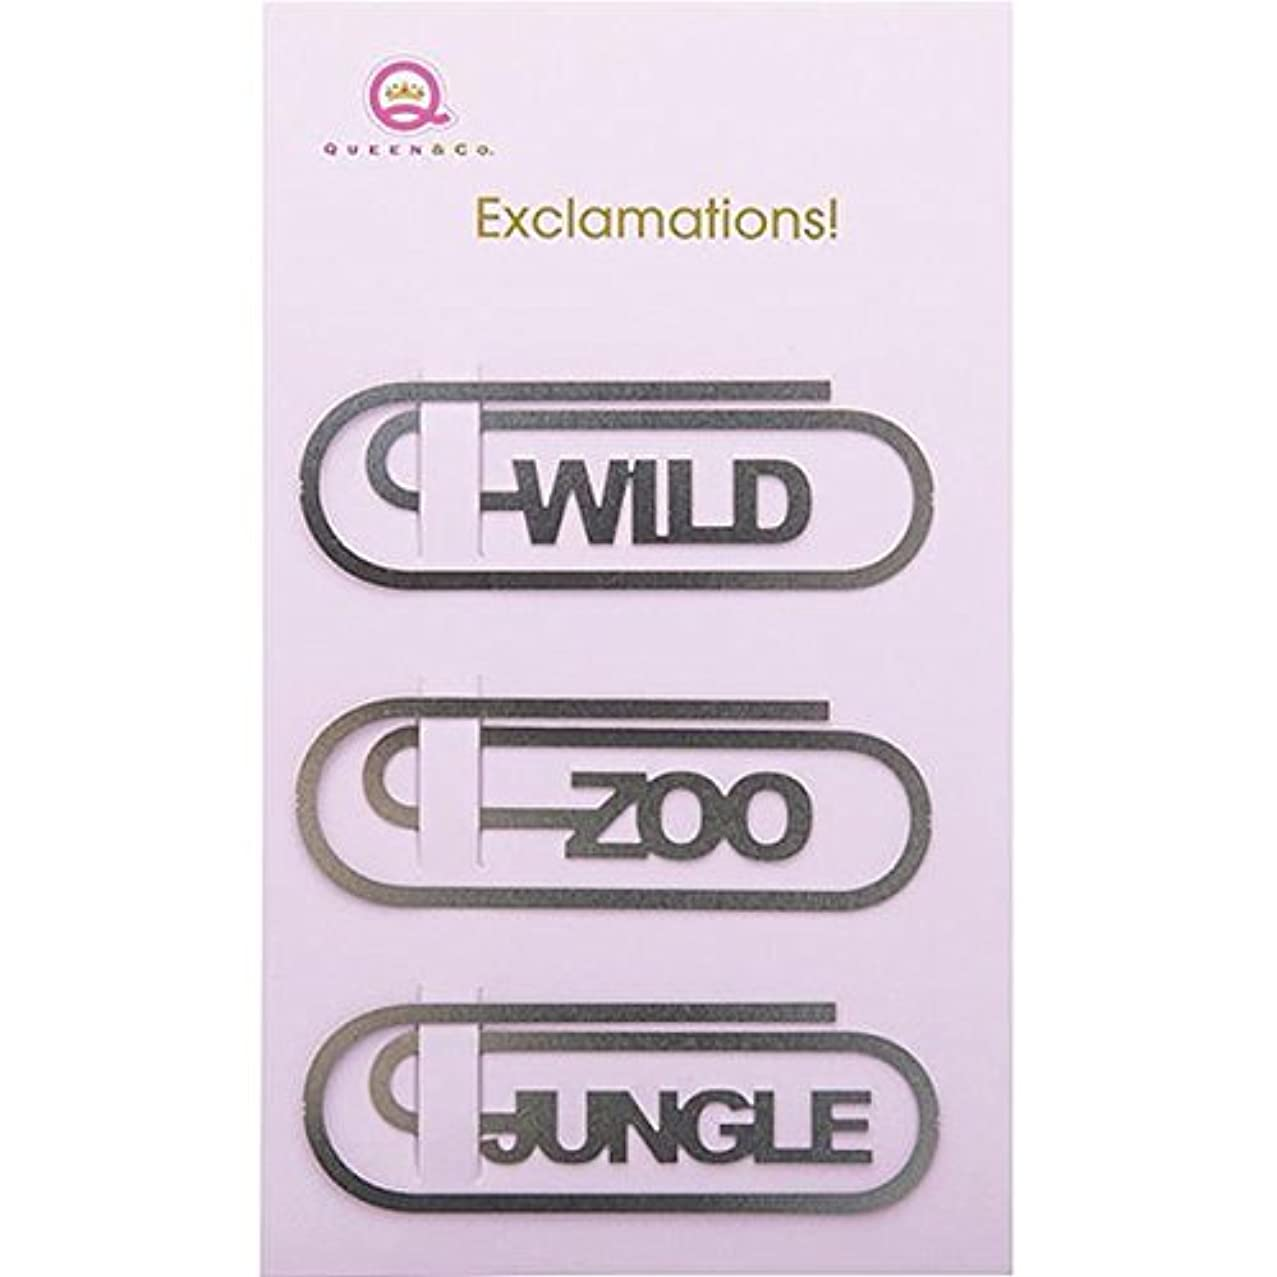 Queen & Co Metal Exclamations! Clips, 2 by 0.75-Inch, Zoo